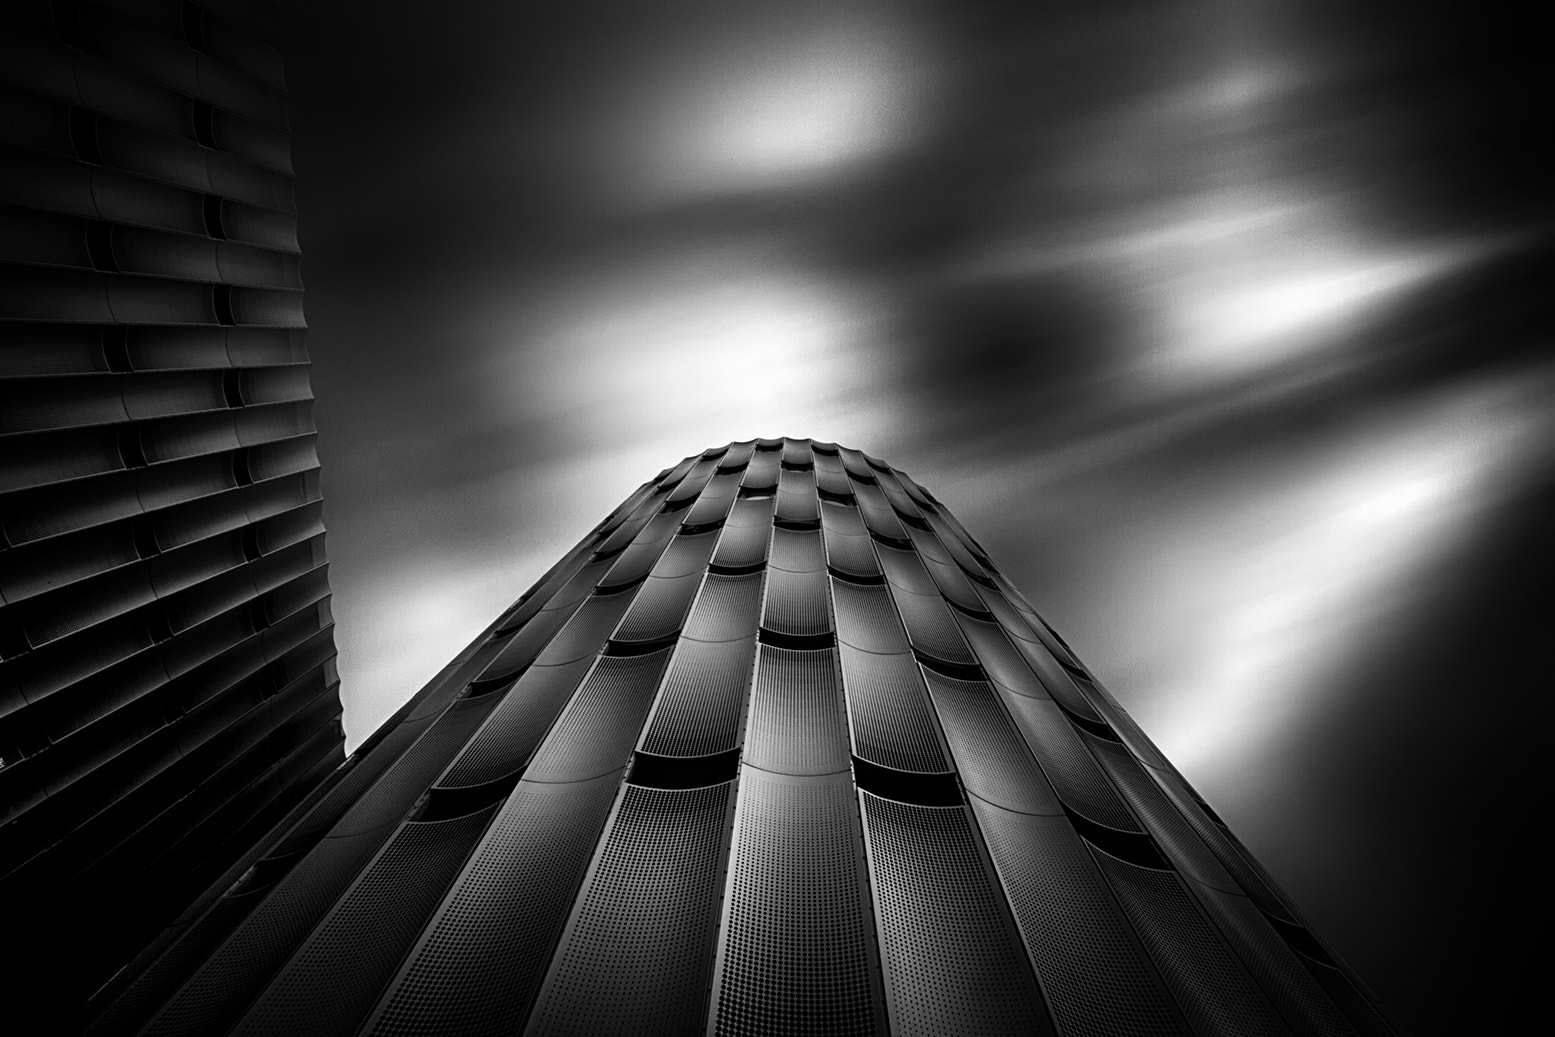 Photograph speed by Kees Smans on 500px